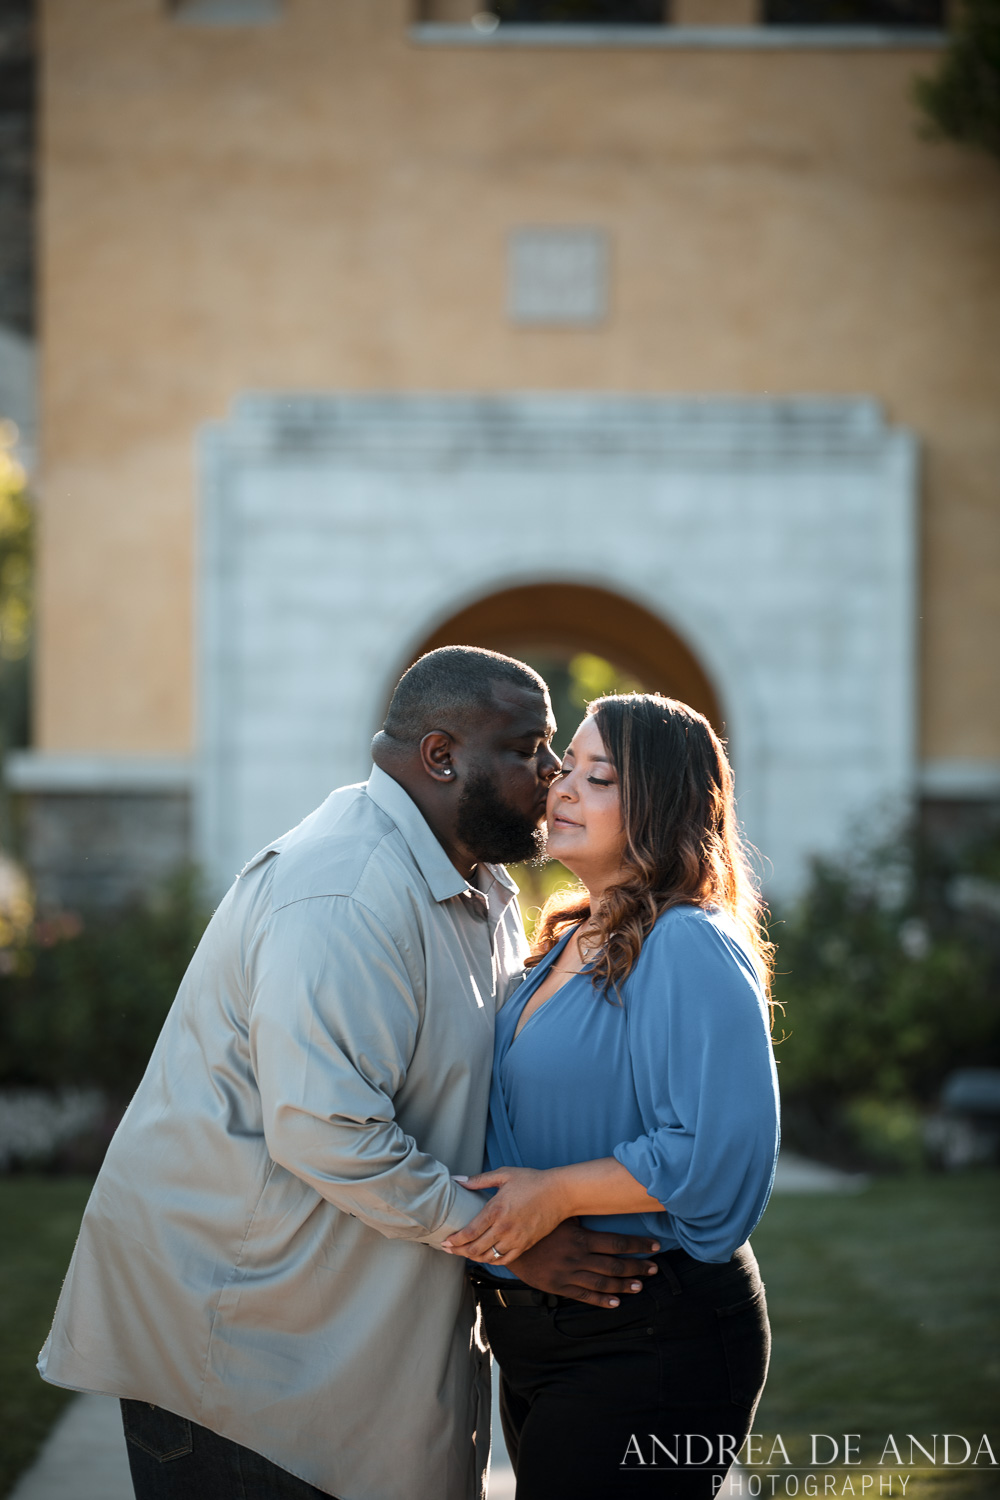 Evergreen-California-Engagement-session-Andrea-de-Anda-photography_-1.jpg